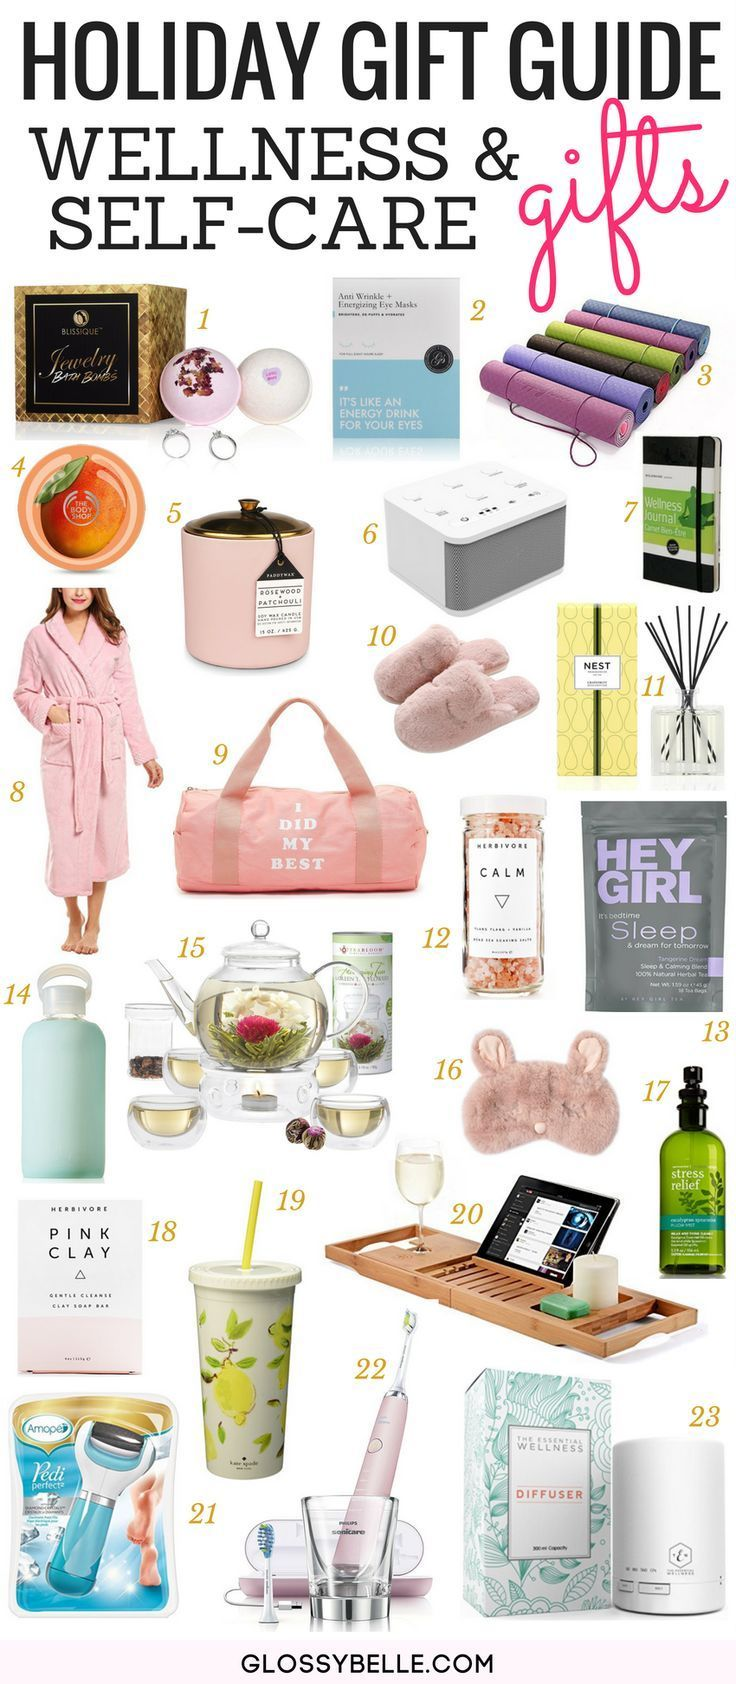 Holiday Gift Guide 2020 40 Thoughtful SelfCare